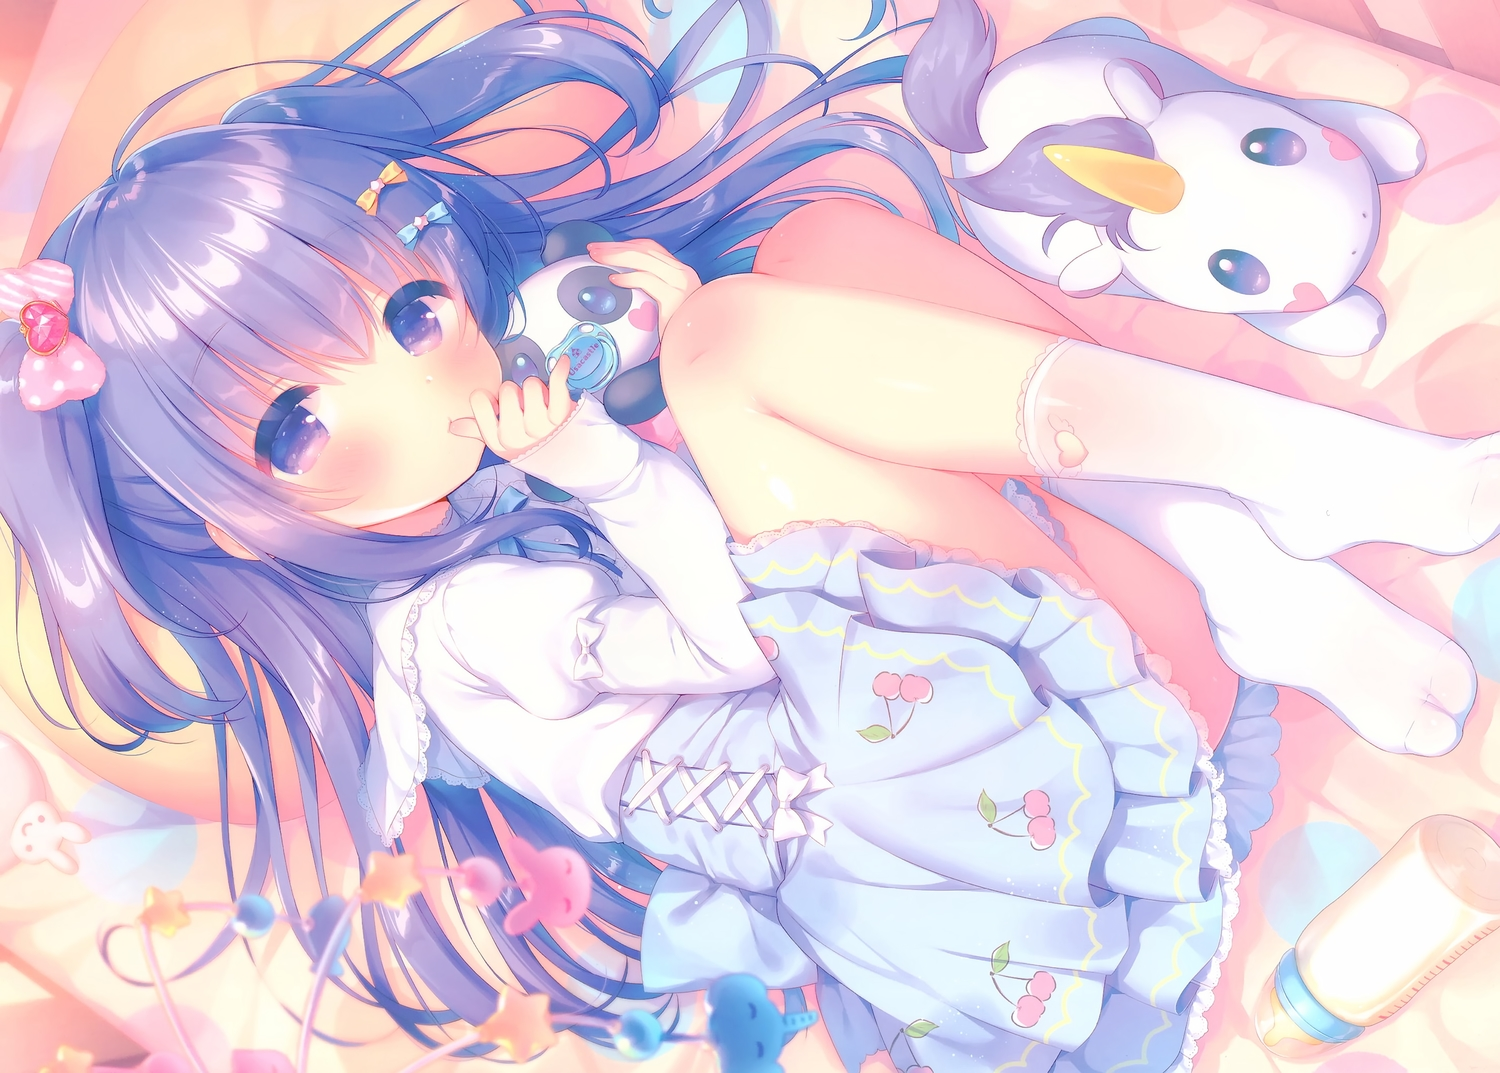 animal dress horse loli mani original purple_eyes purple_hair scan stockings teddy_bear twintails unicorn